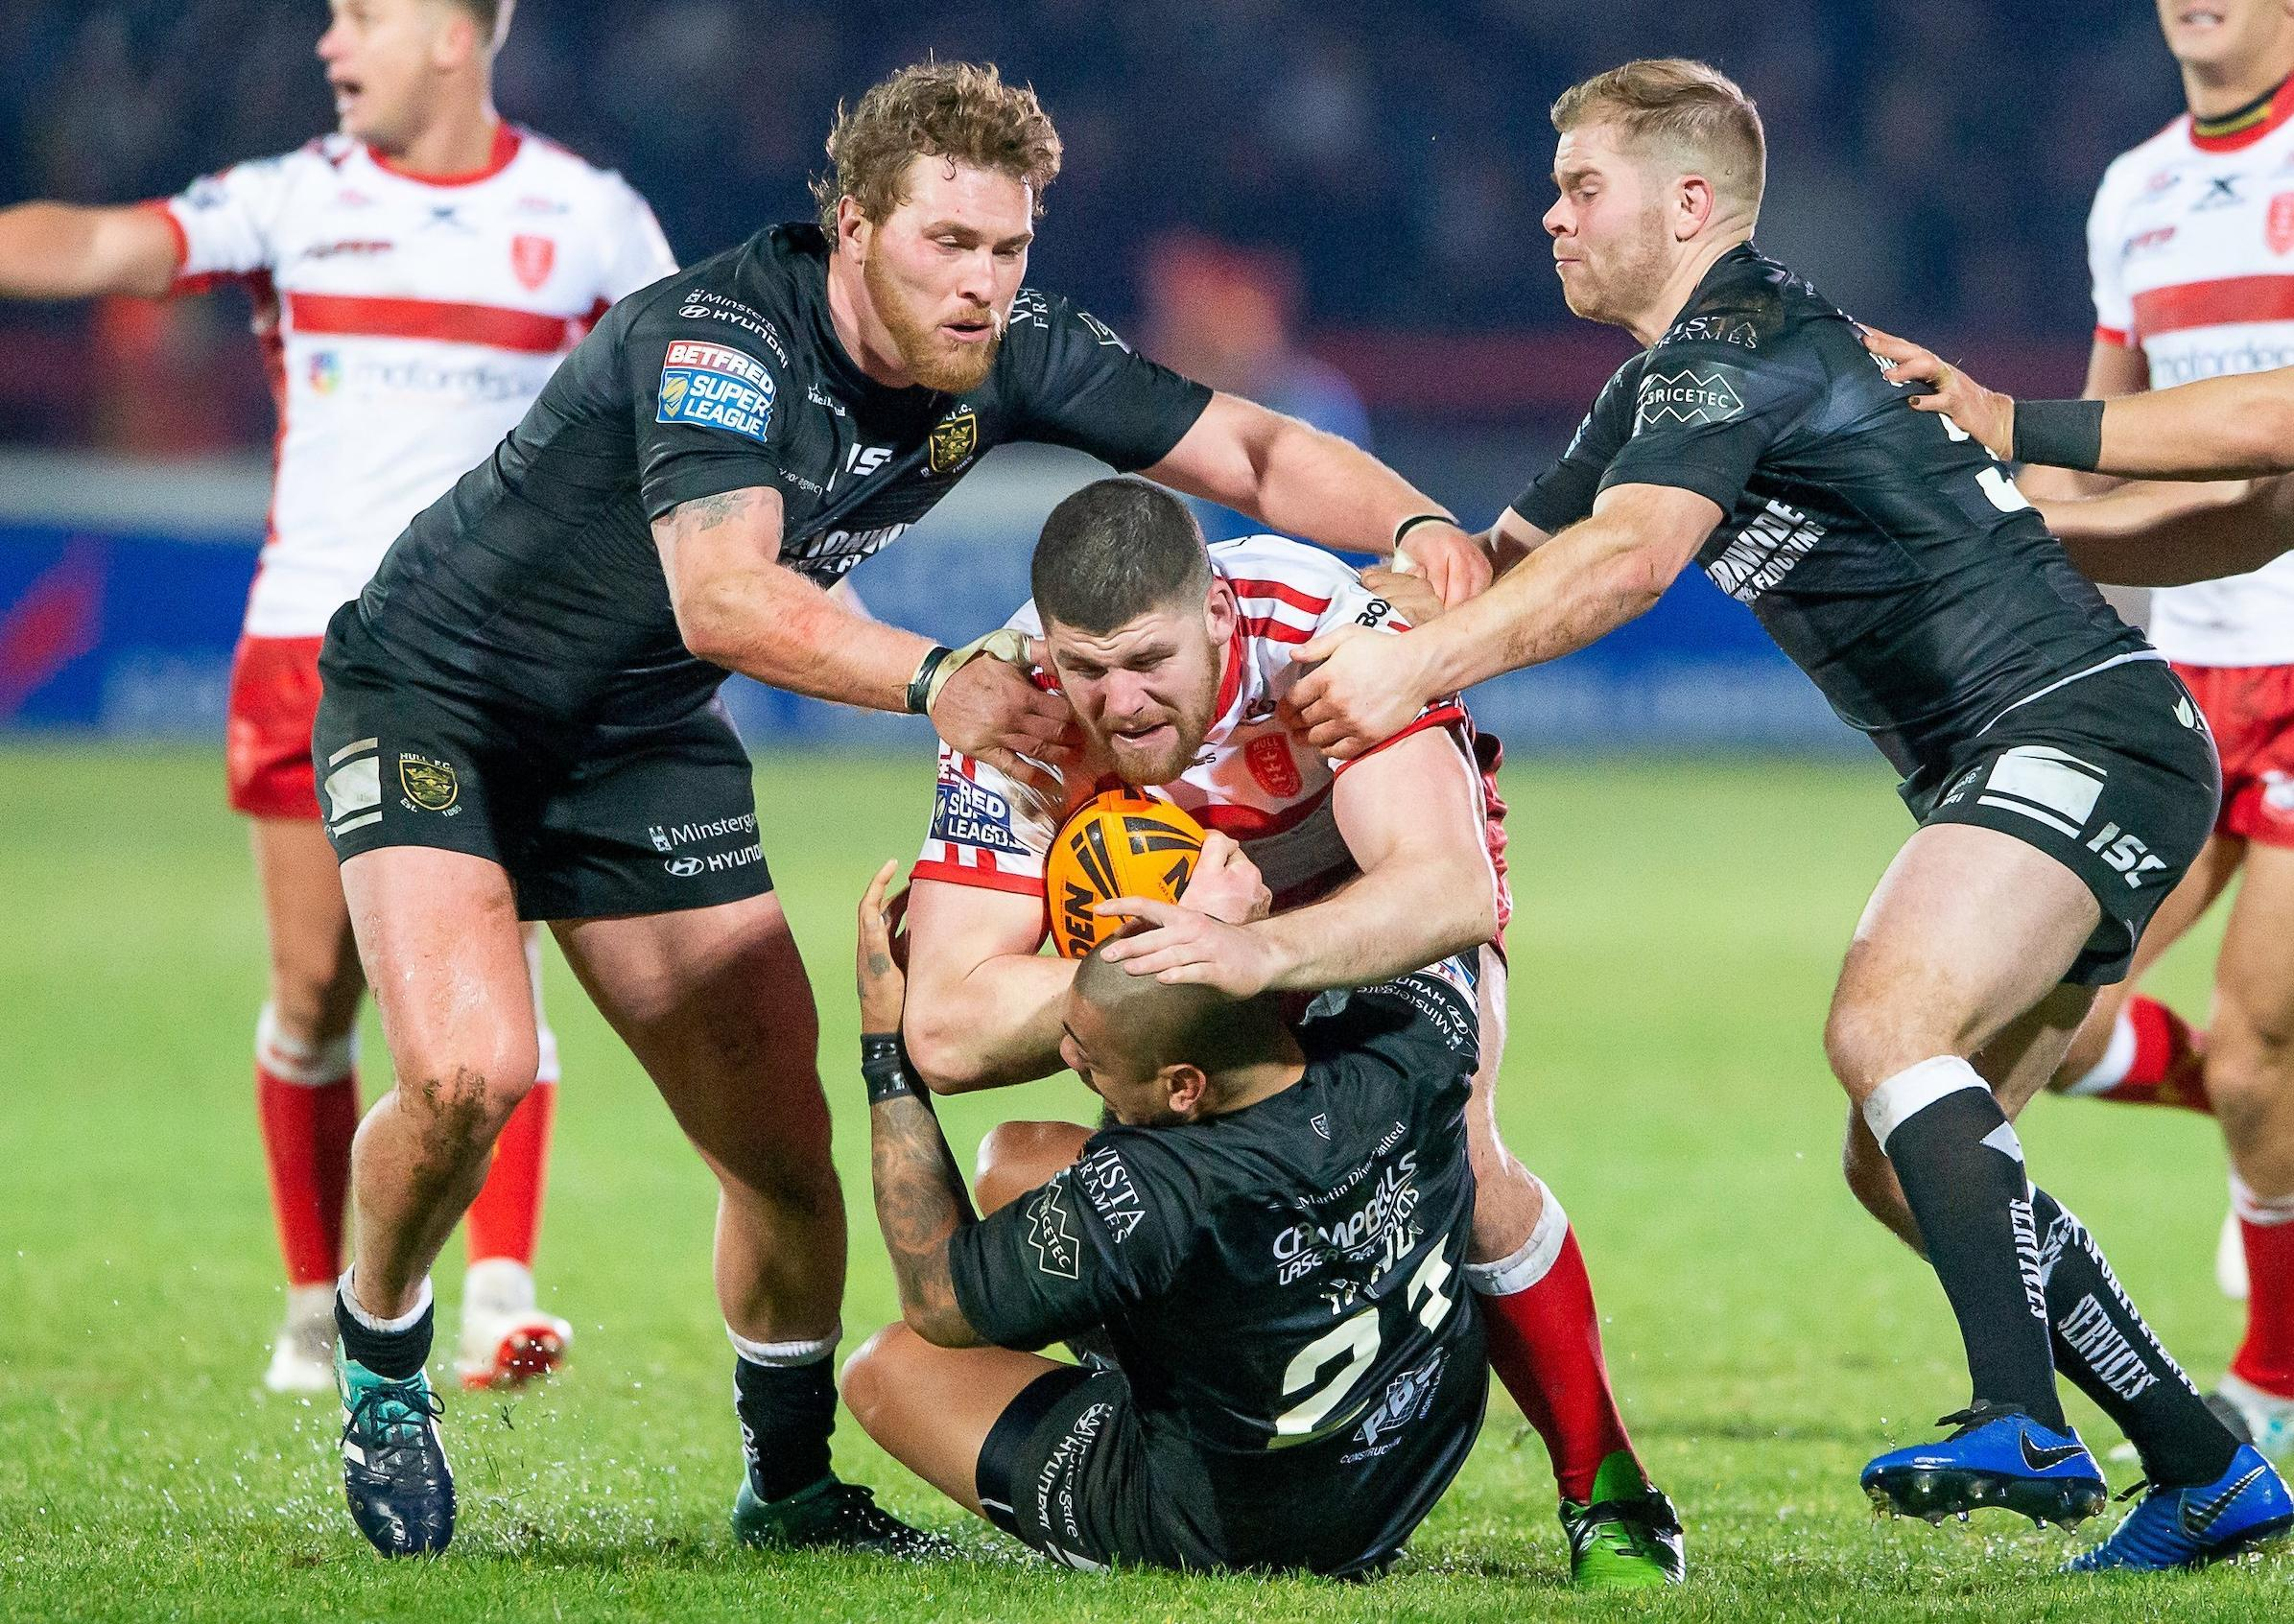 yorkshirepost.co.uk - By The Newsroom - Break has given Mitch Garbutt and Hull KR to regain full fitness